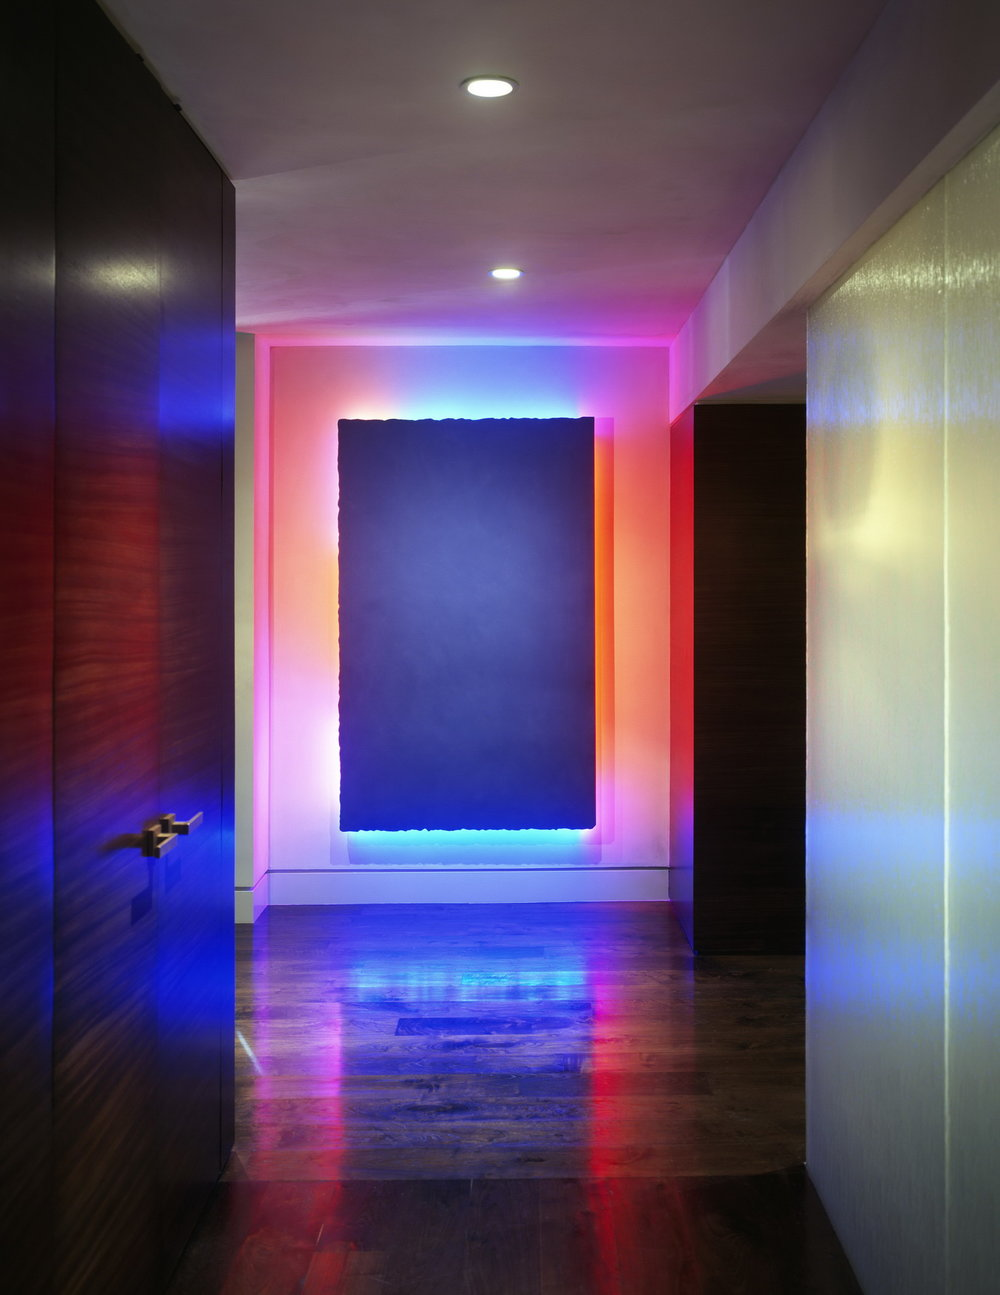 01 Gallery, looking toward Neon art.jpg